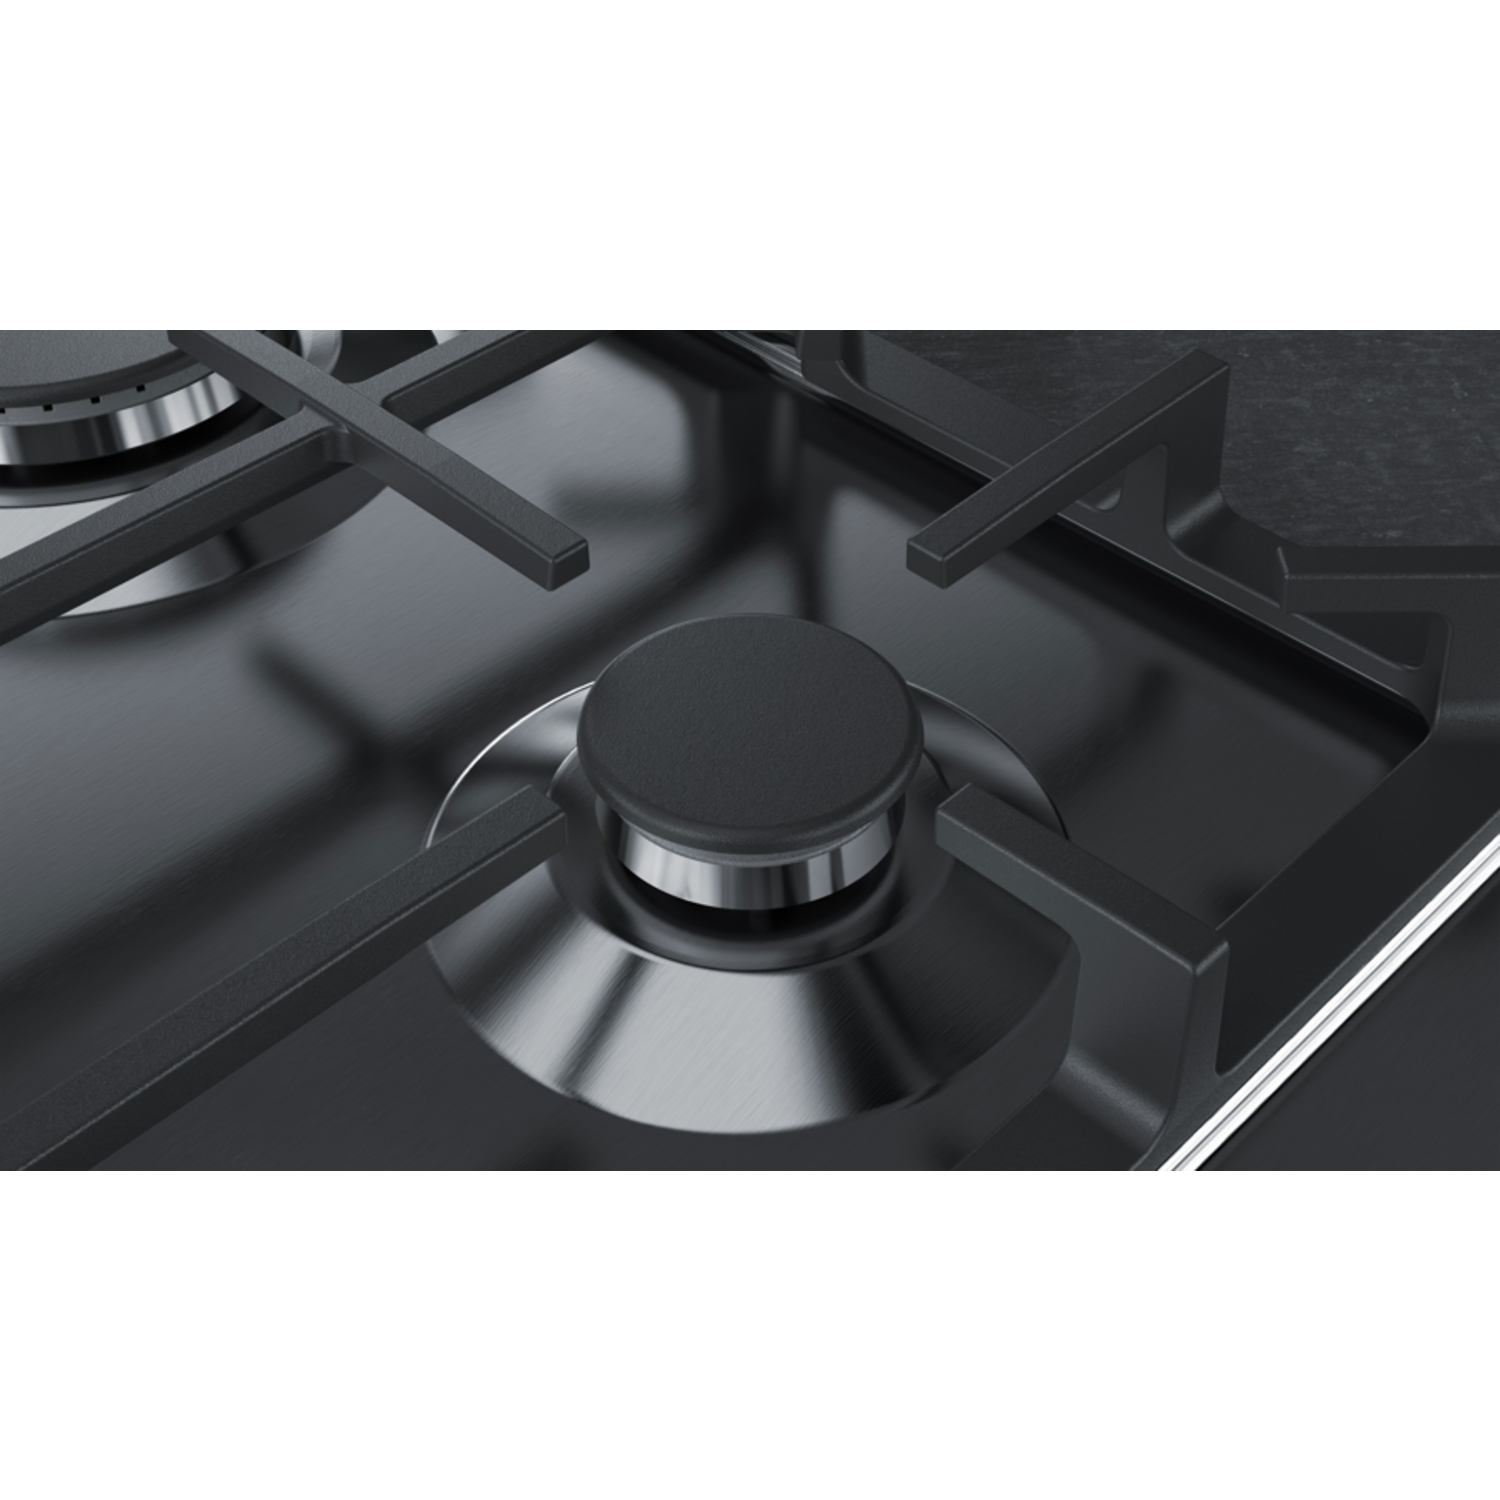 Neff 58cm Gas Hob - Stainless Steel - 2